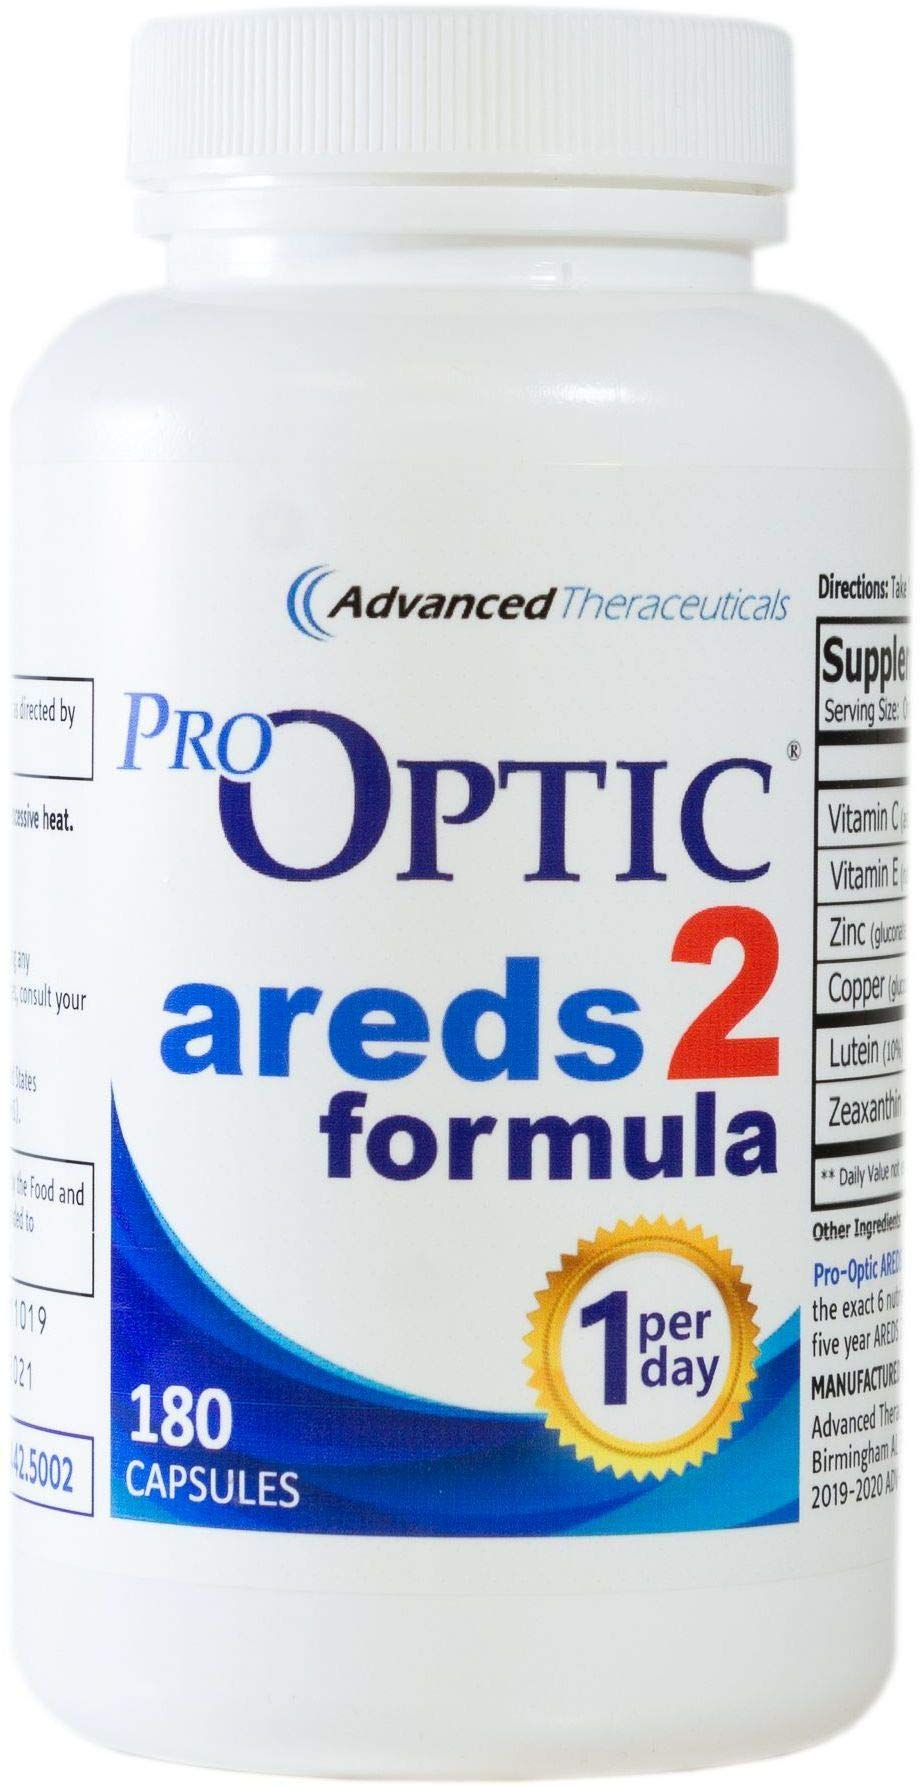 Pro-Optic AREDS2 Formula (6 Month Supply) 180 Count / 1-Per-Day + Free Shipping by Pro-Optic (Image #1)